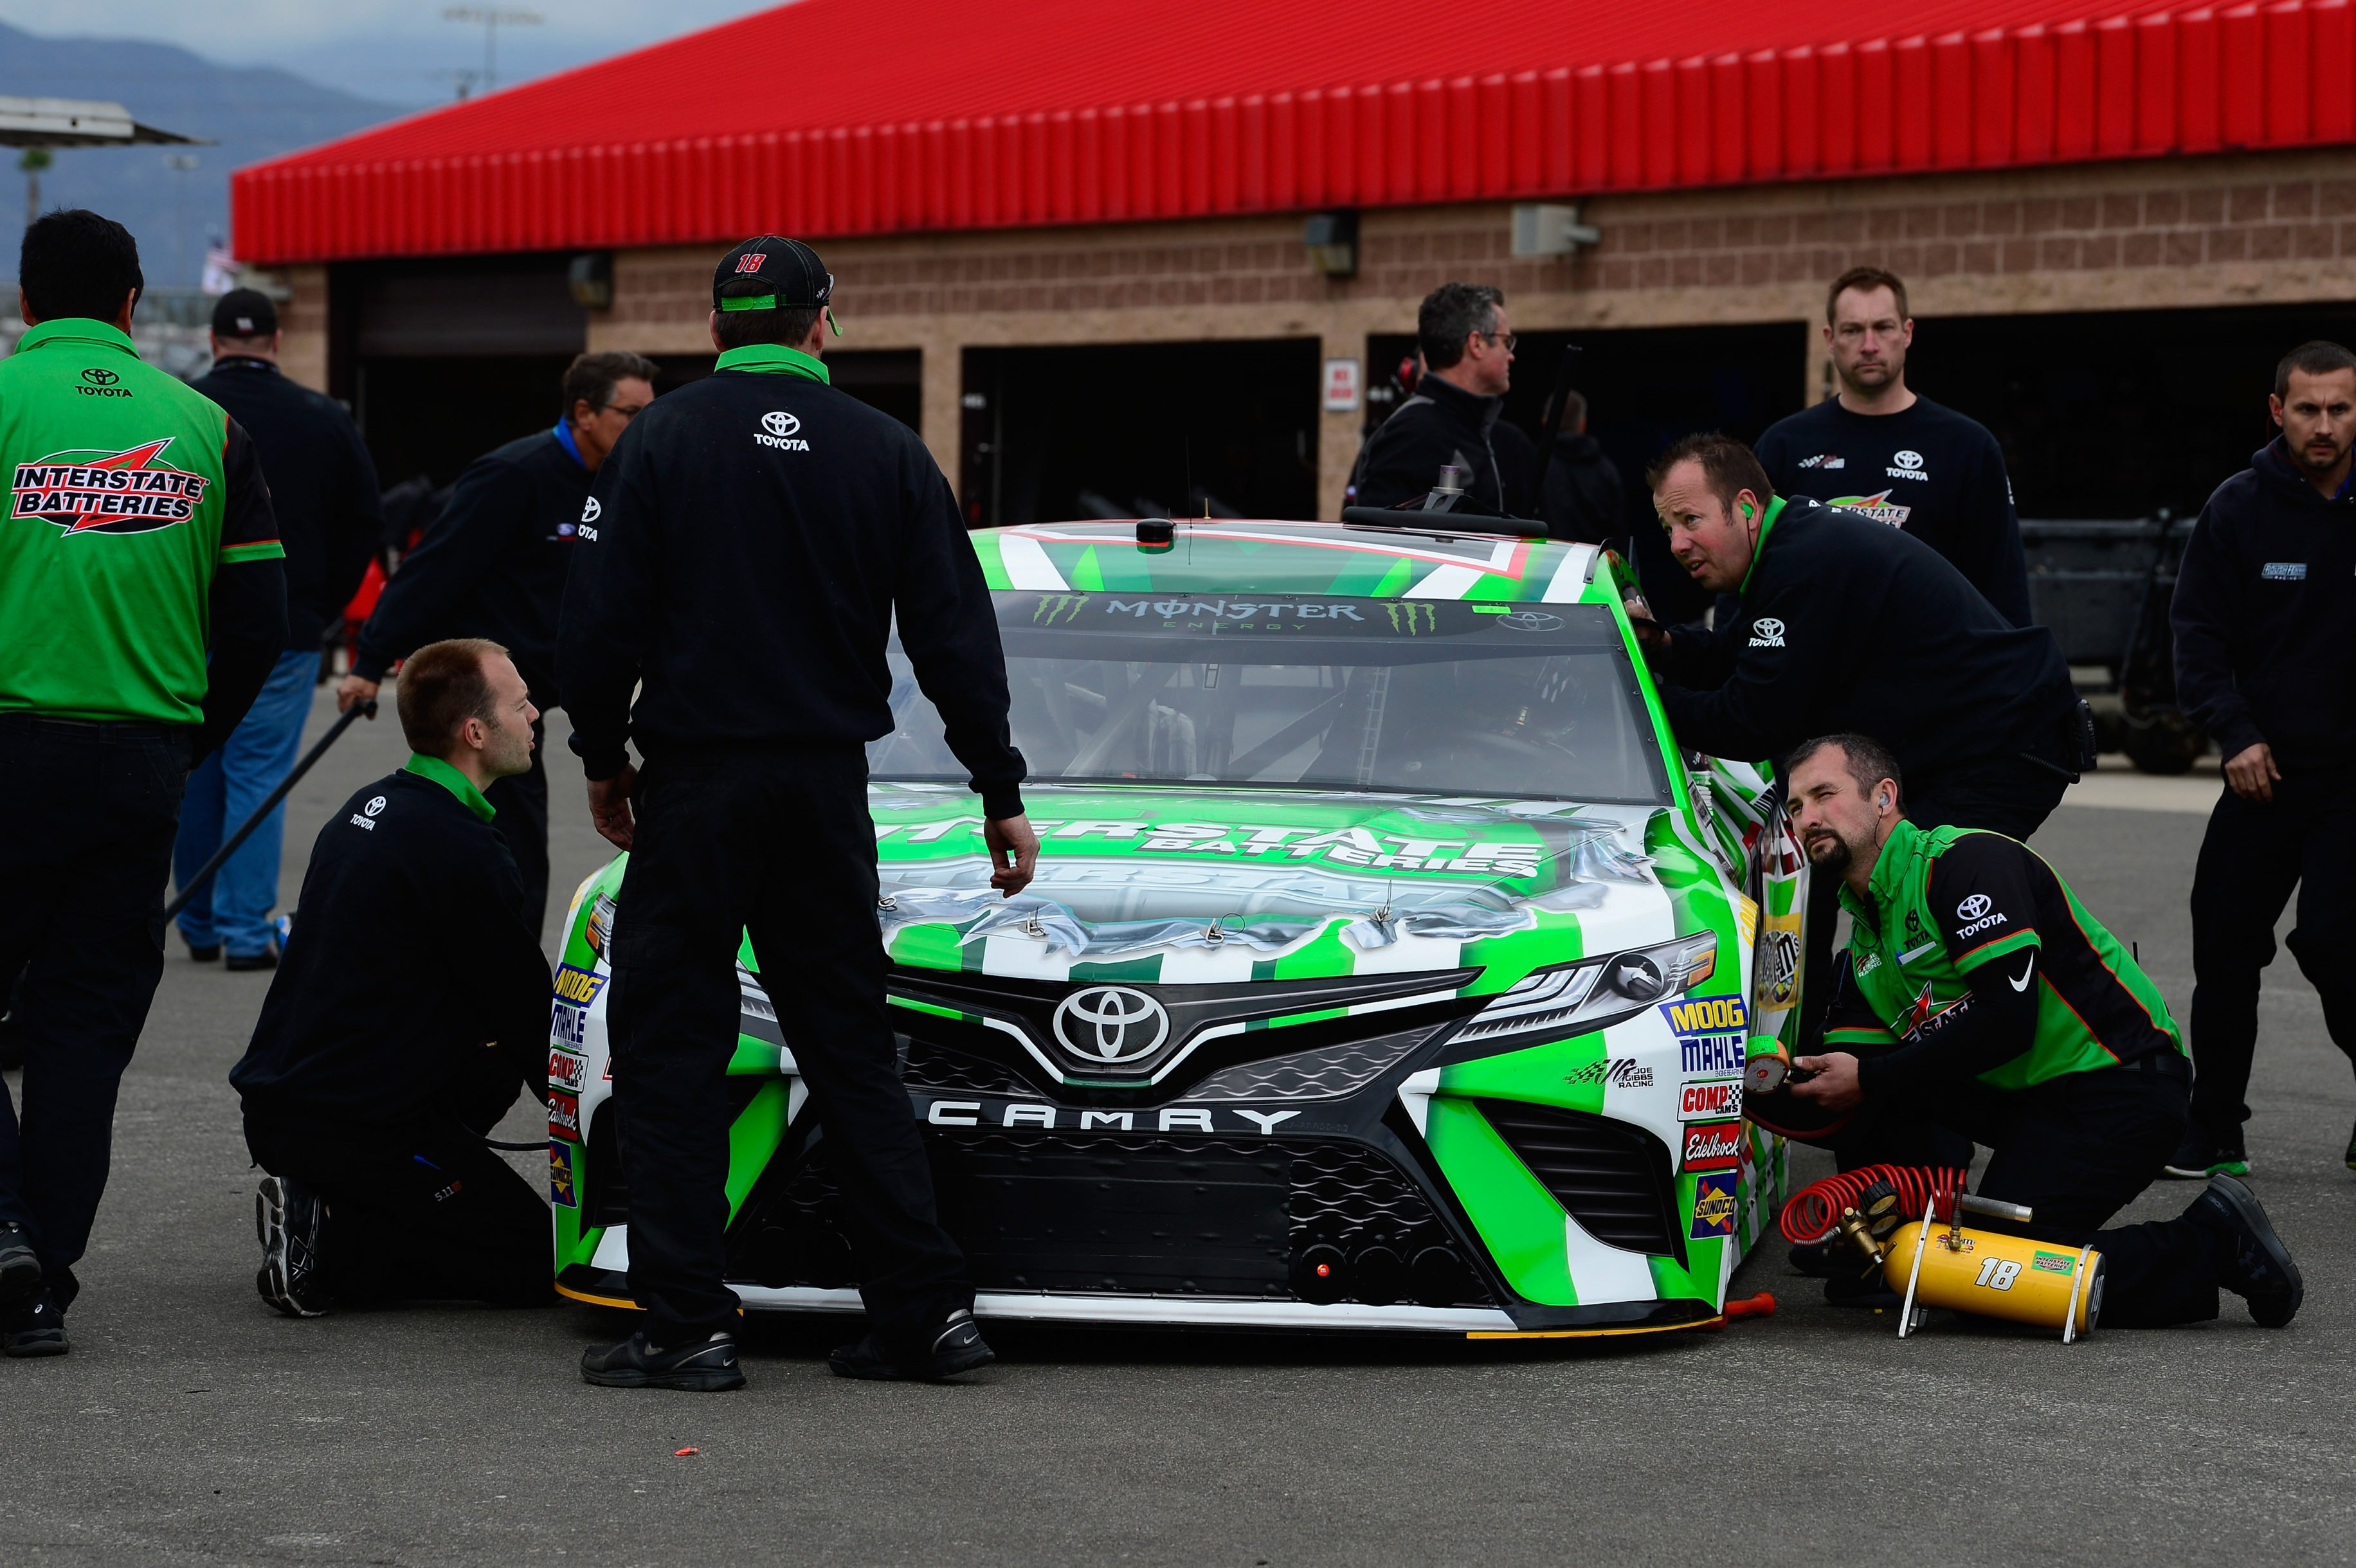 Kyle Busch - NASCAR Inspection at Auto Club Speedway